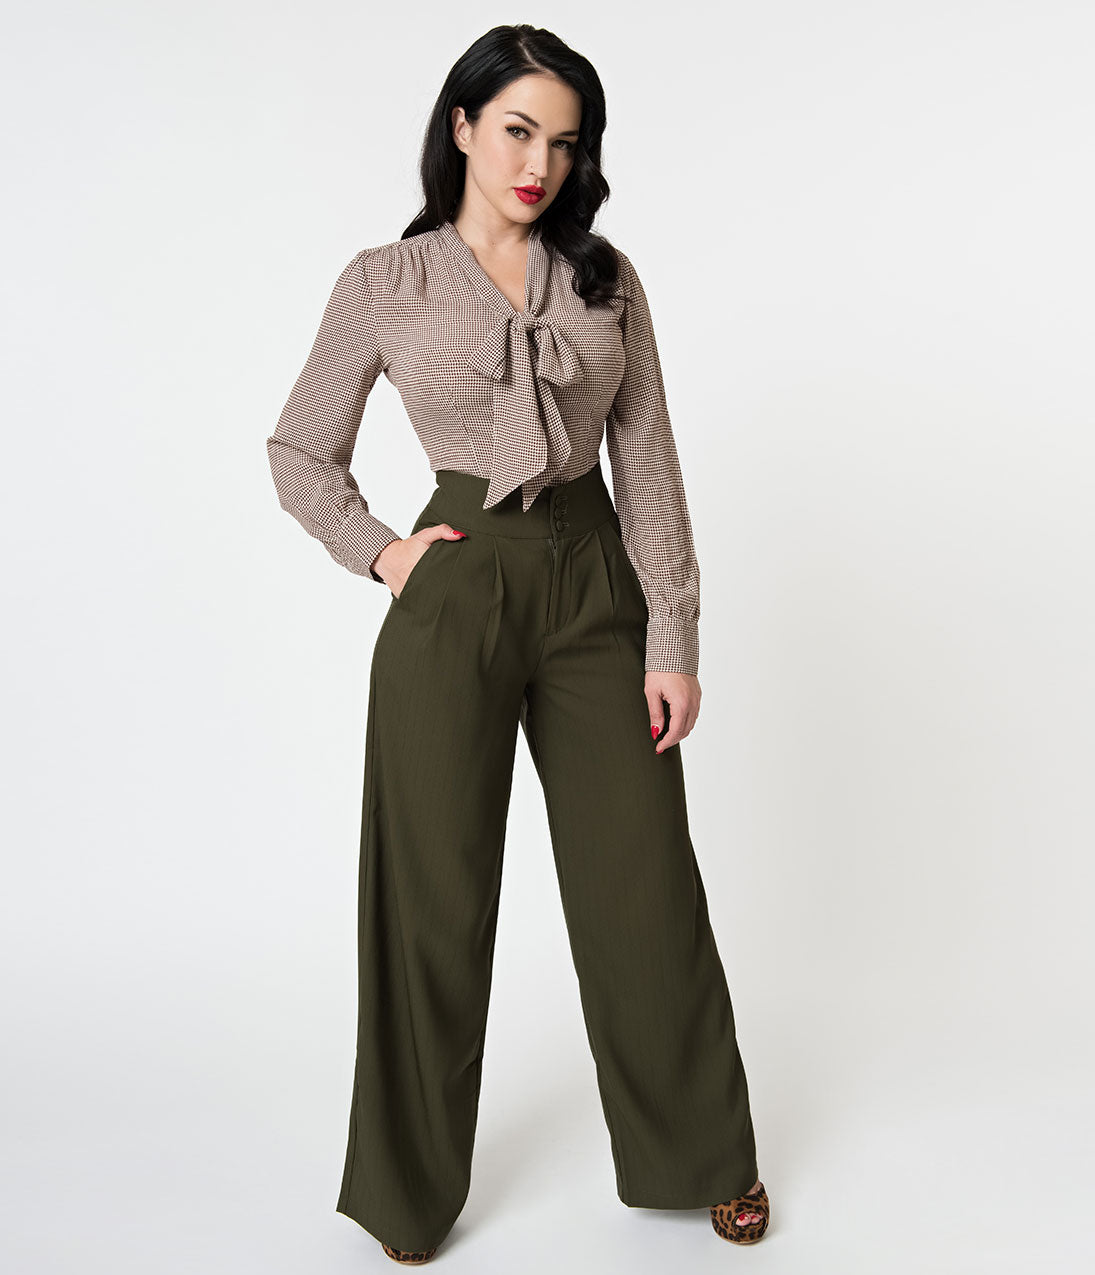 60s – 70s Pants, Jeans, Hippie, Bell Bottoms, Jumpsuits Voodoo Vixen 1940S Style Olive Green Pin Stripe High Waisted Pants $58.00 AT vintagedancer.com